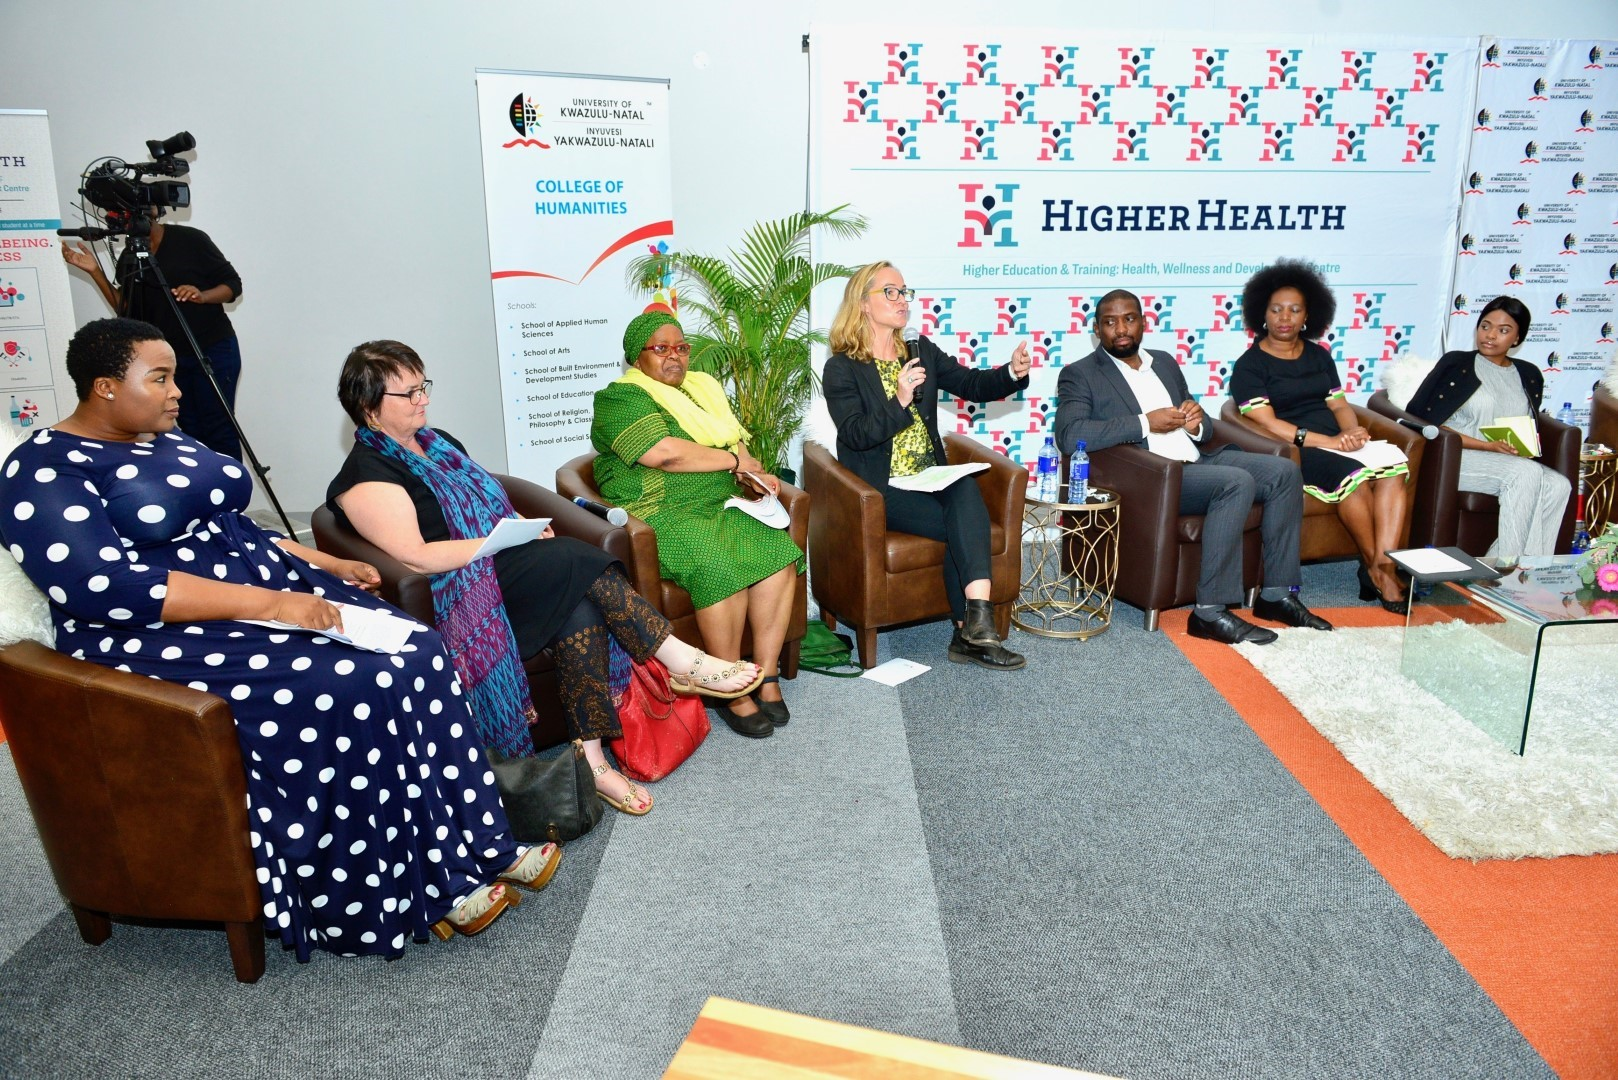 Highlights from the Gender-Based Violence dialogue.